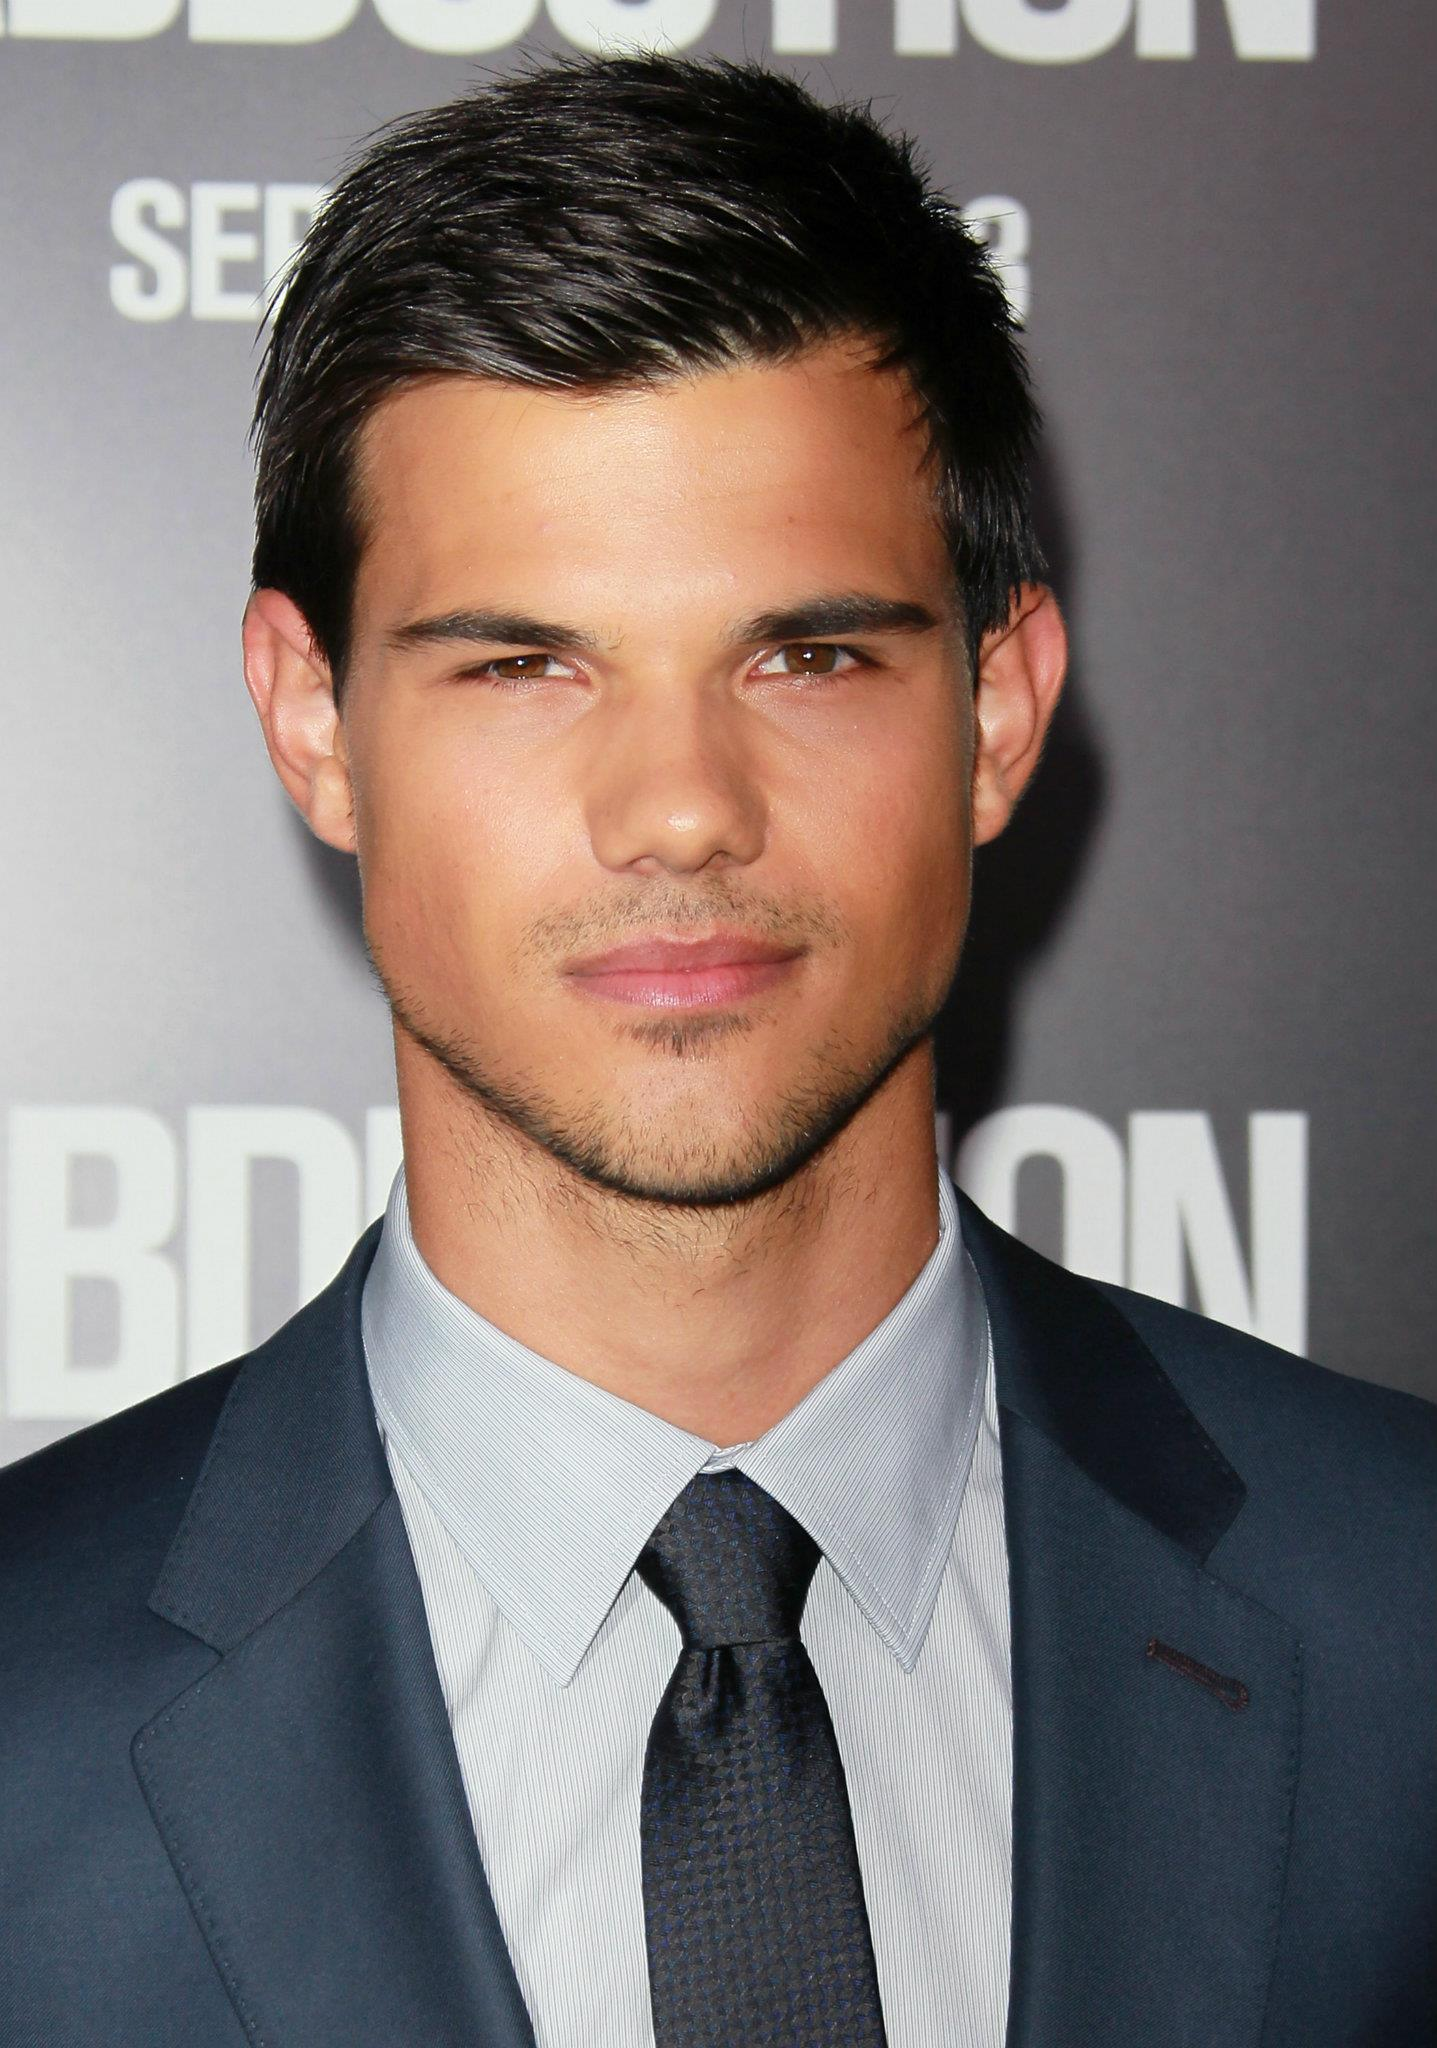 Pictures Of Taylor Lautner 72